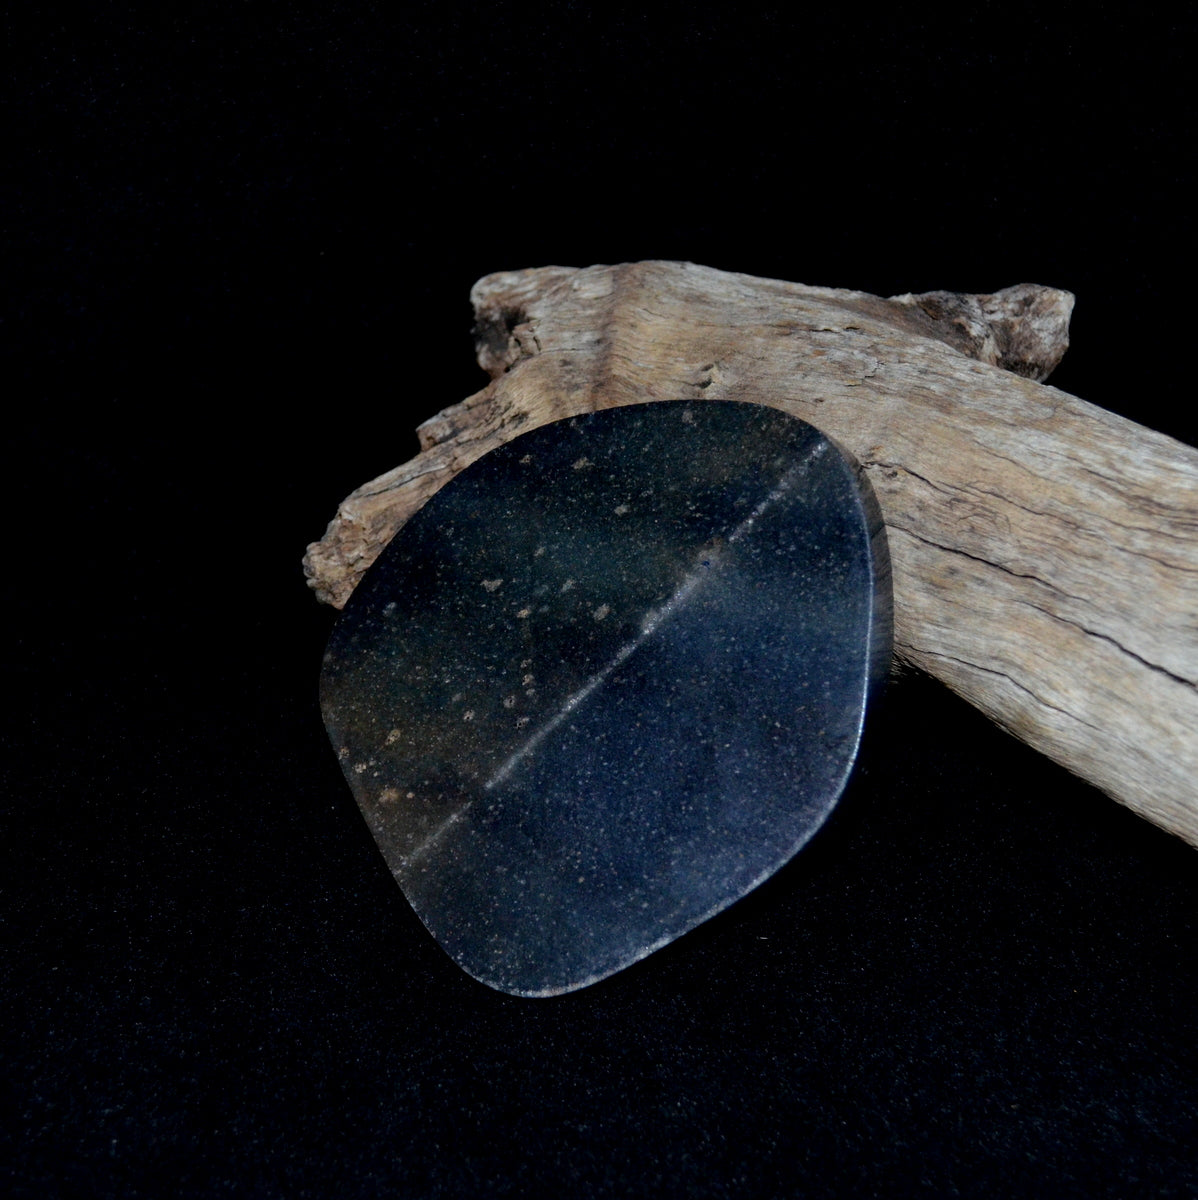 Lazulite Polished Slice - Intuition Calming Meditation - Shop Now at Illiom Crystals - Afterpay Available